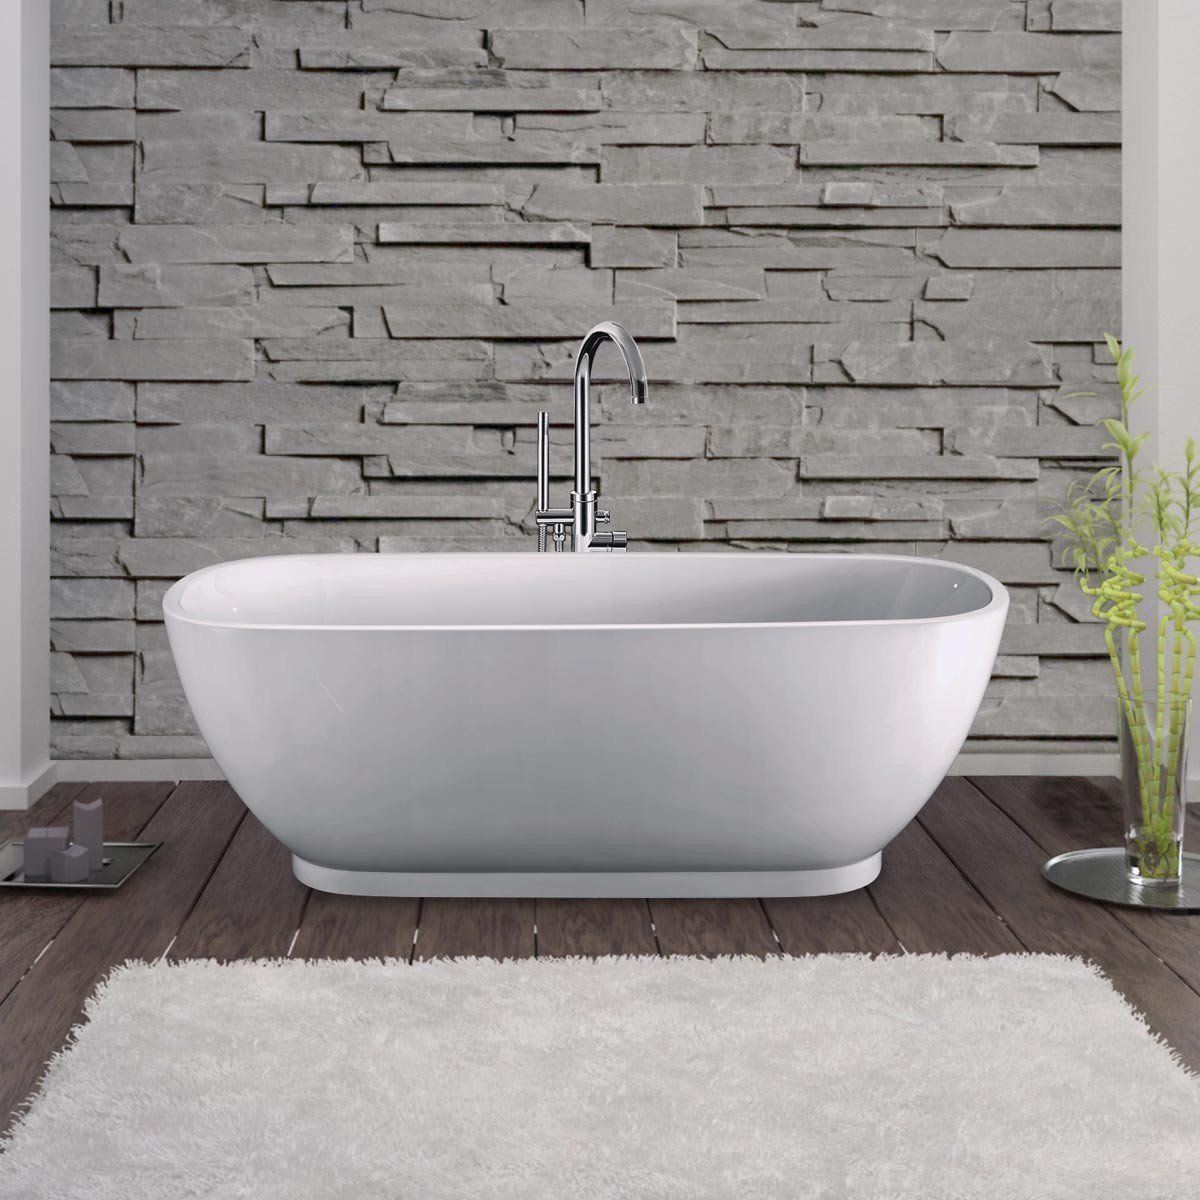 Randolph Morris 66 Inch Acrylic Double Ended Freestanding Tub - No ...